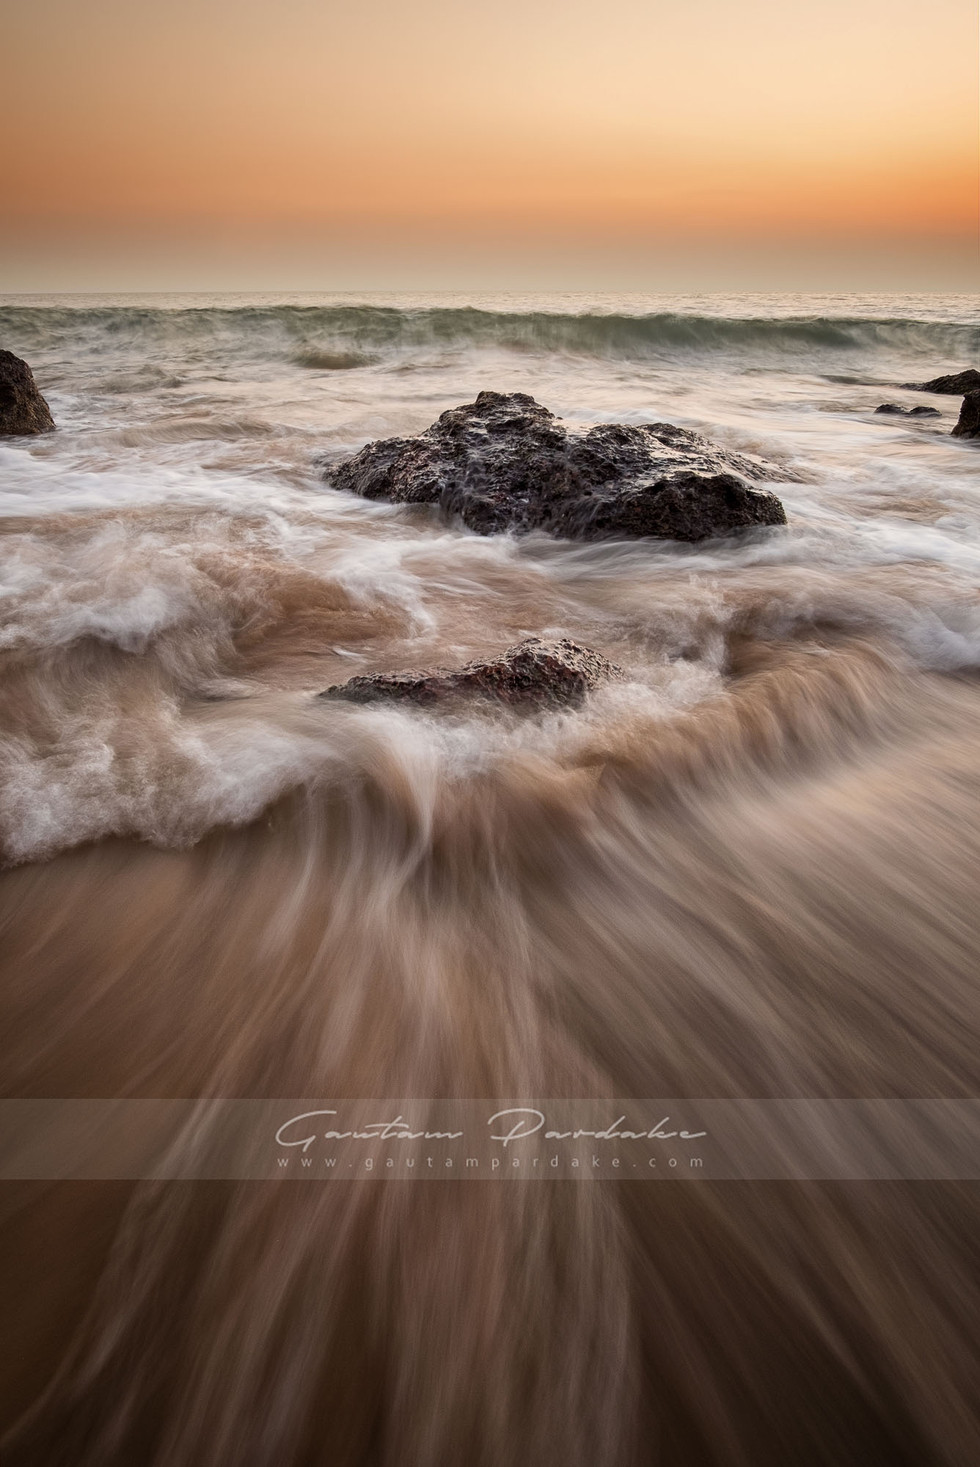 Powerful landscape photograph with crashing waves on an Indian beach at sunset